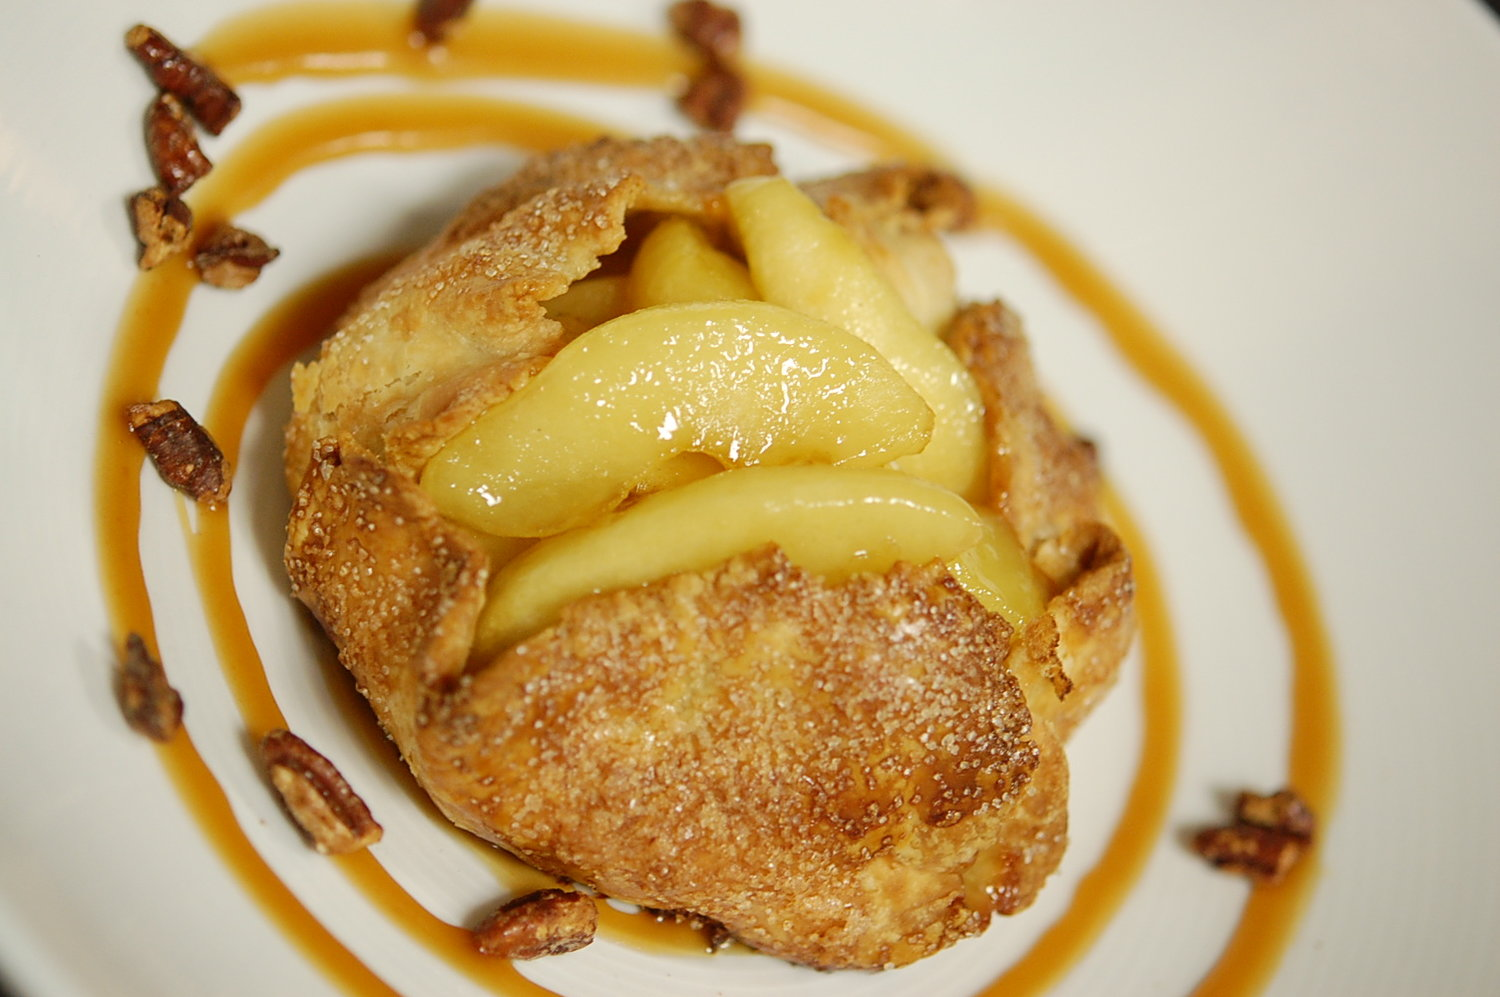 An apple-filled pastry at Equinox.